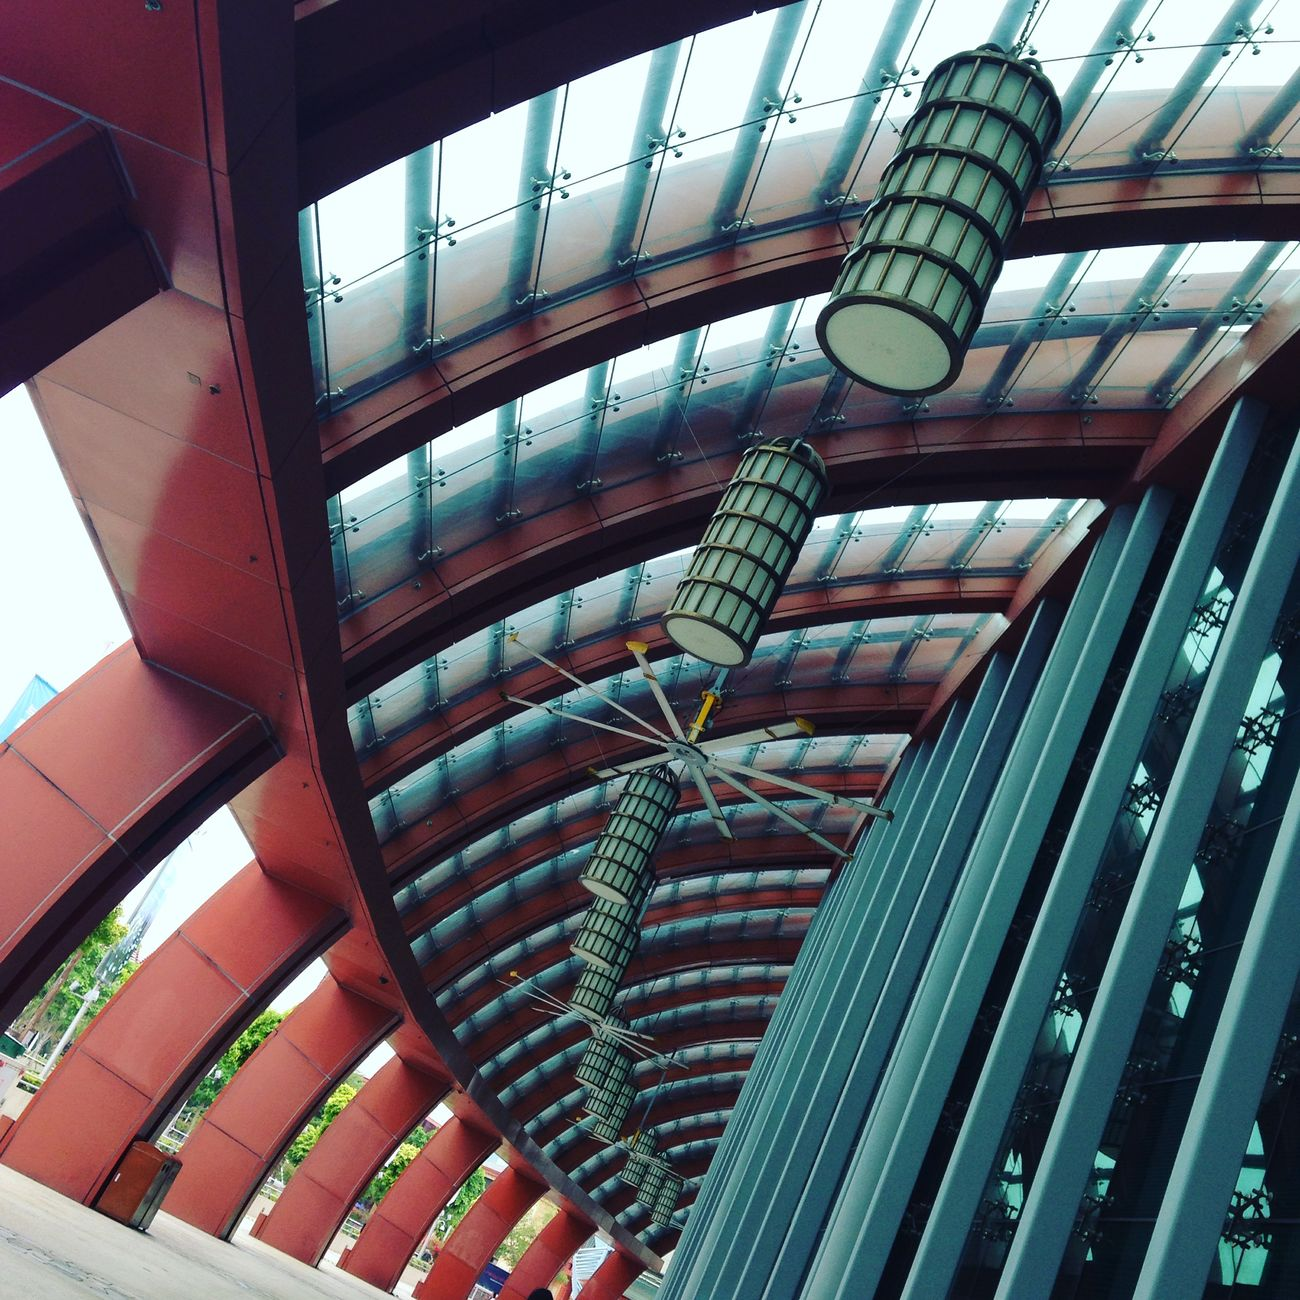 Chasing lines and patterns at Sentosa. Lines Pattern Fixture Structure